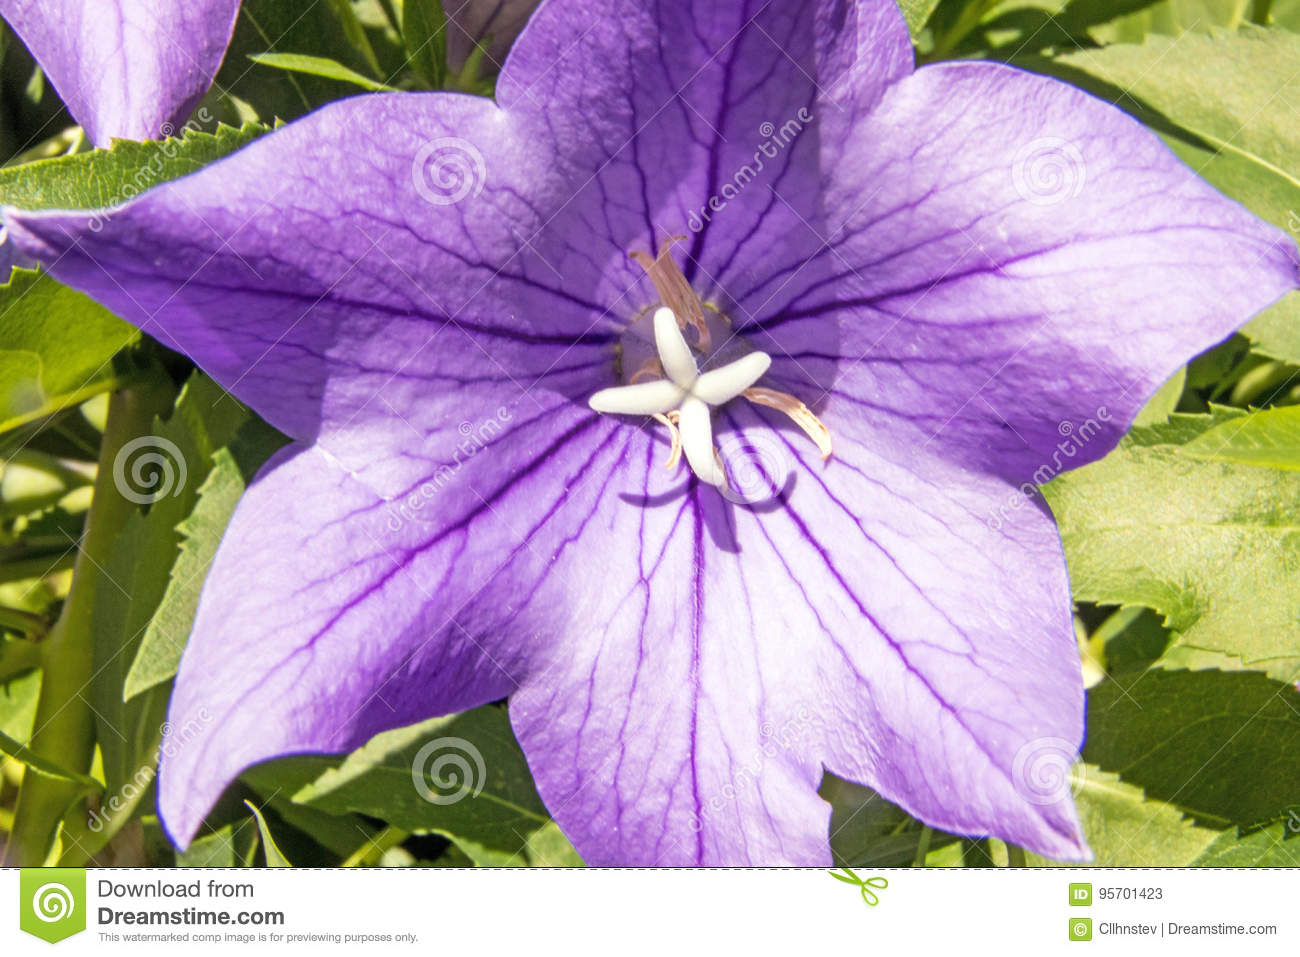 Balloon Flower Stock Image Image Of Grandiflorus Parts 95701423